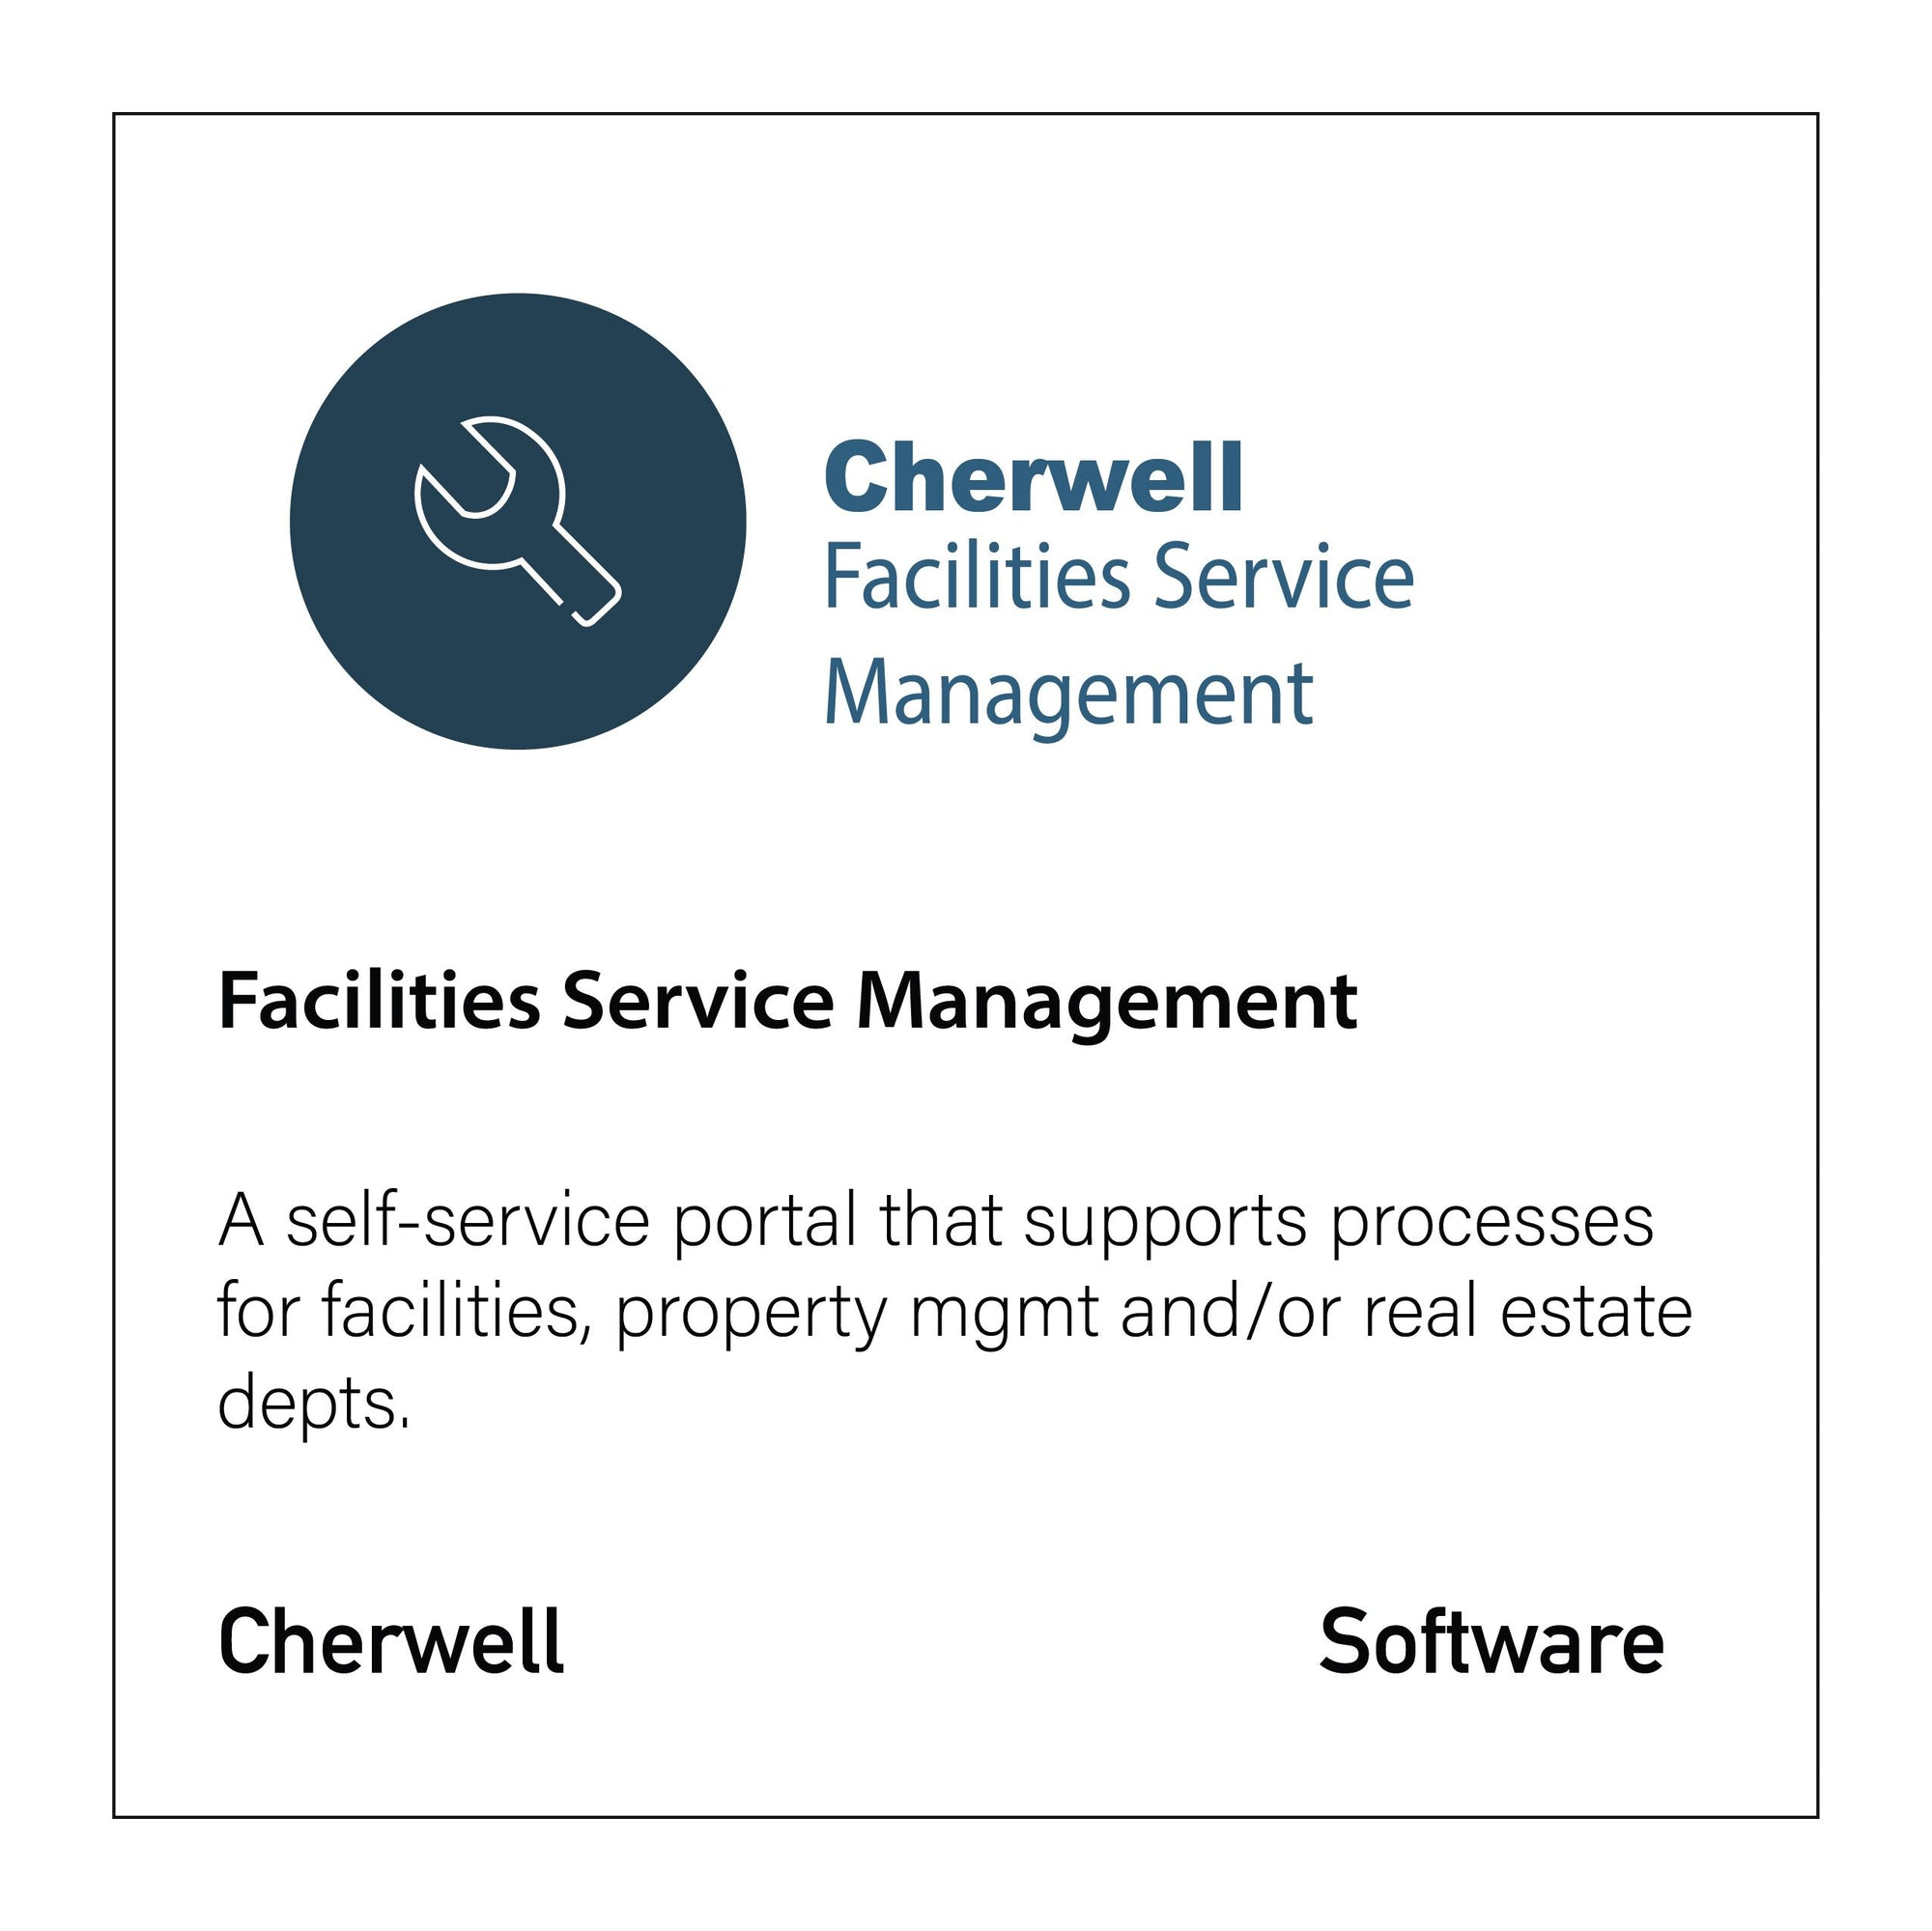 Cherwell Facilities Management - CloseReach Ltd